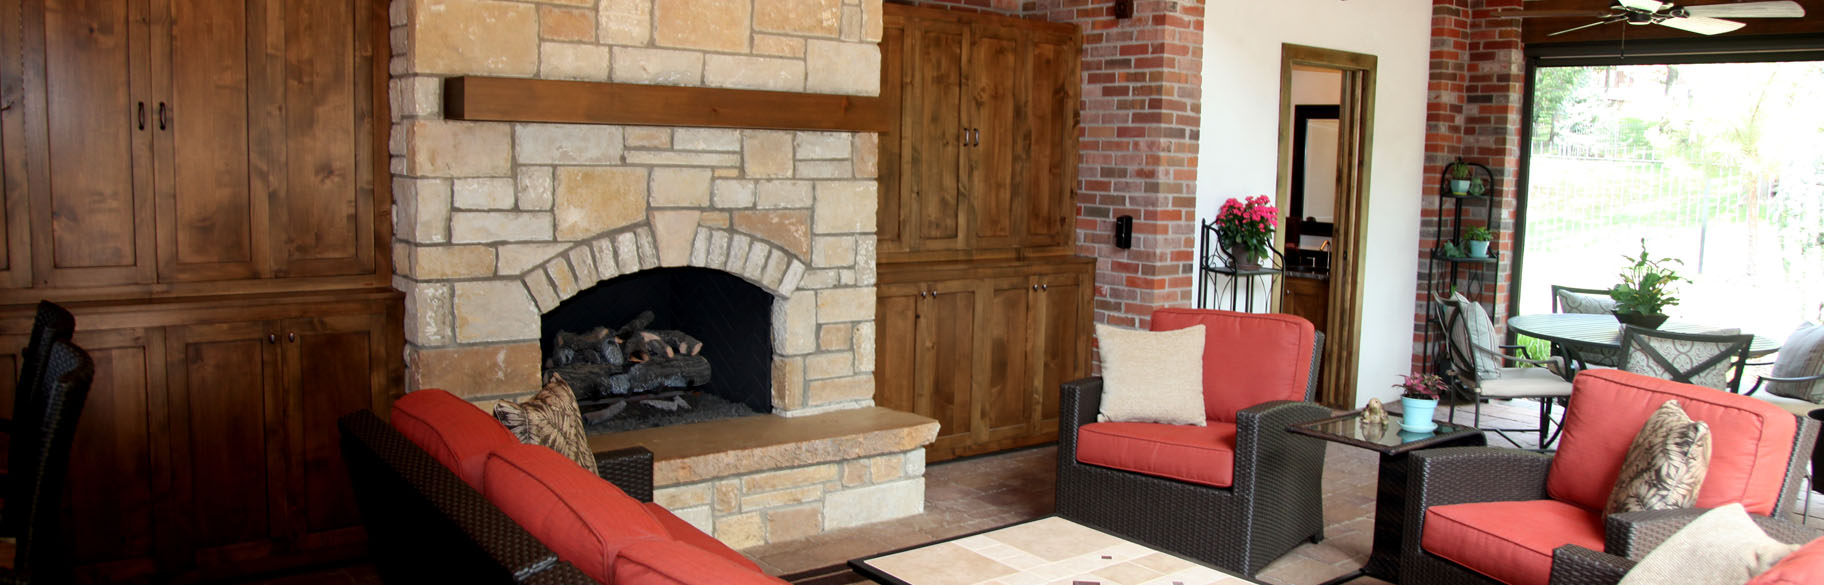 Fireplaces & Pits 5